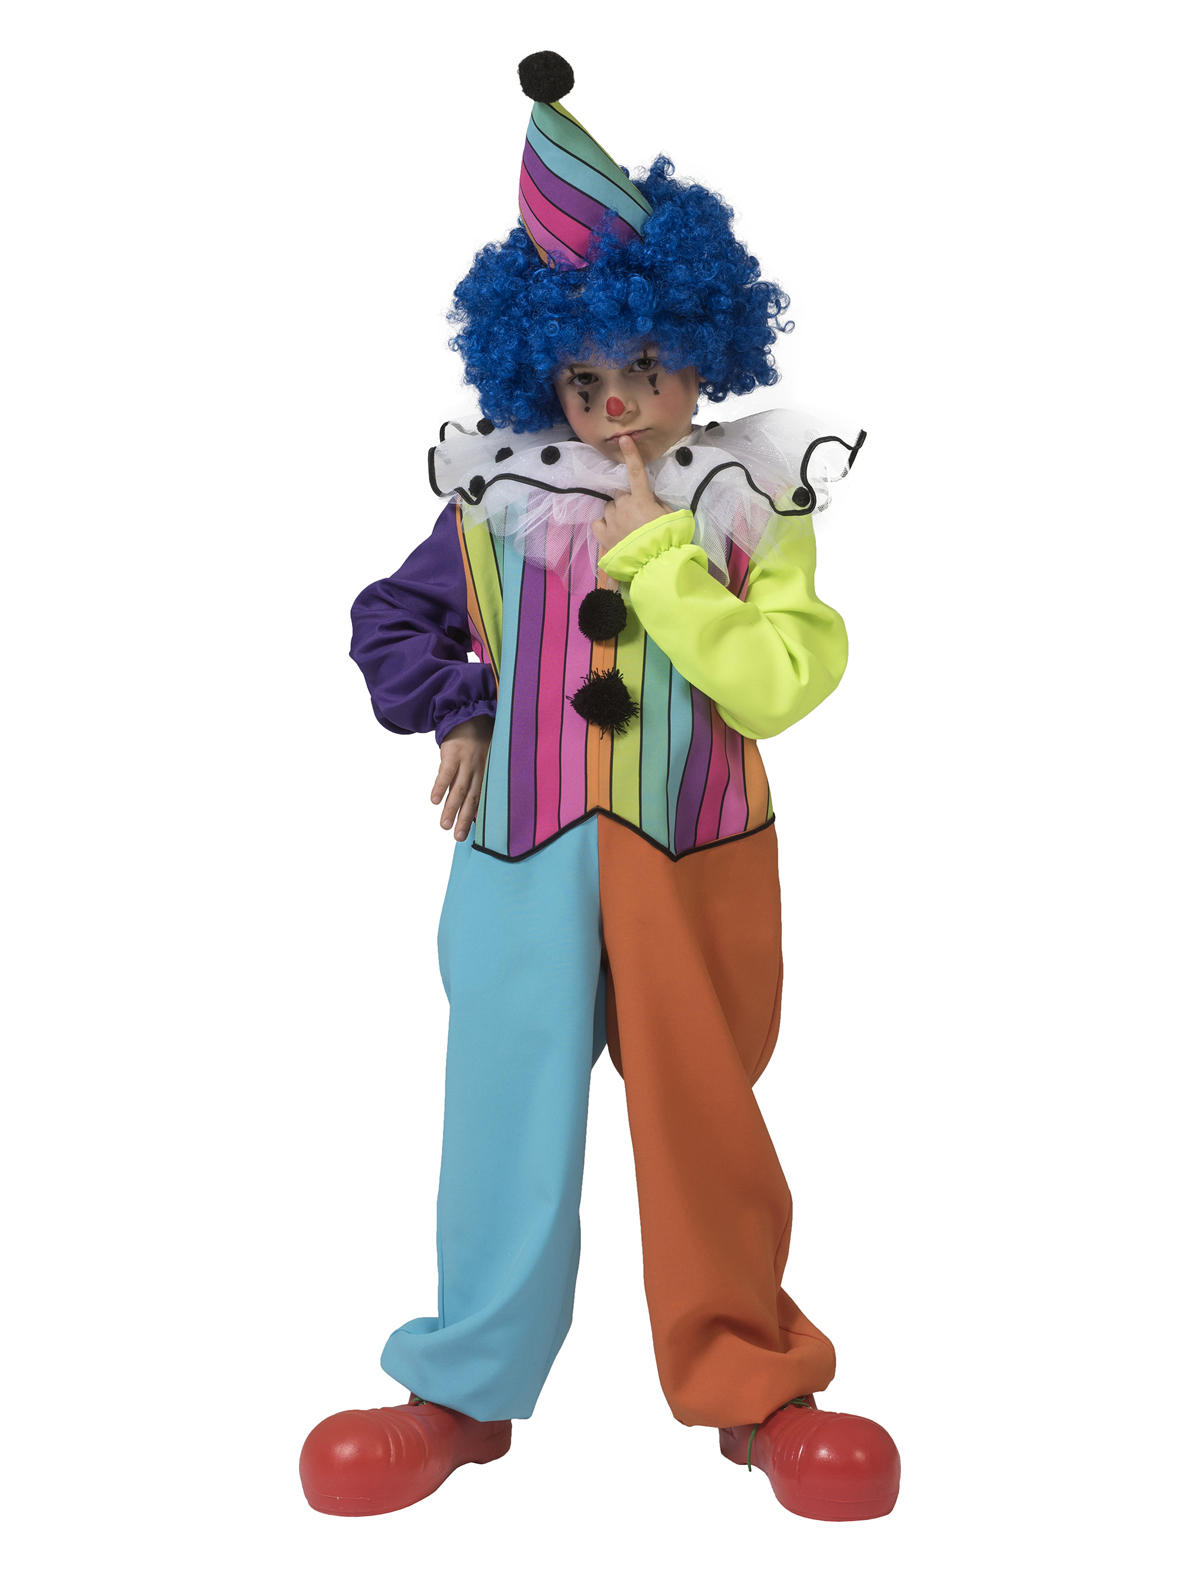 FUNNY RAINBOW CLOWN BOY COSTUME FOR KIDS